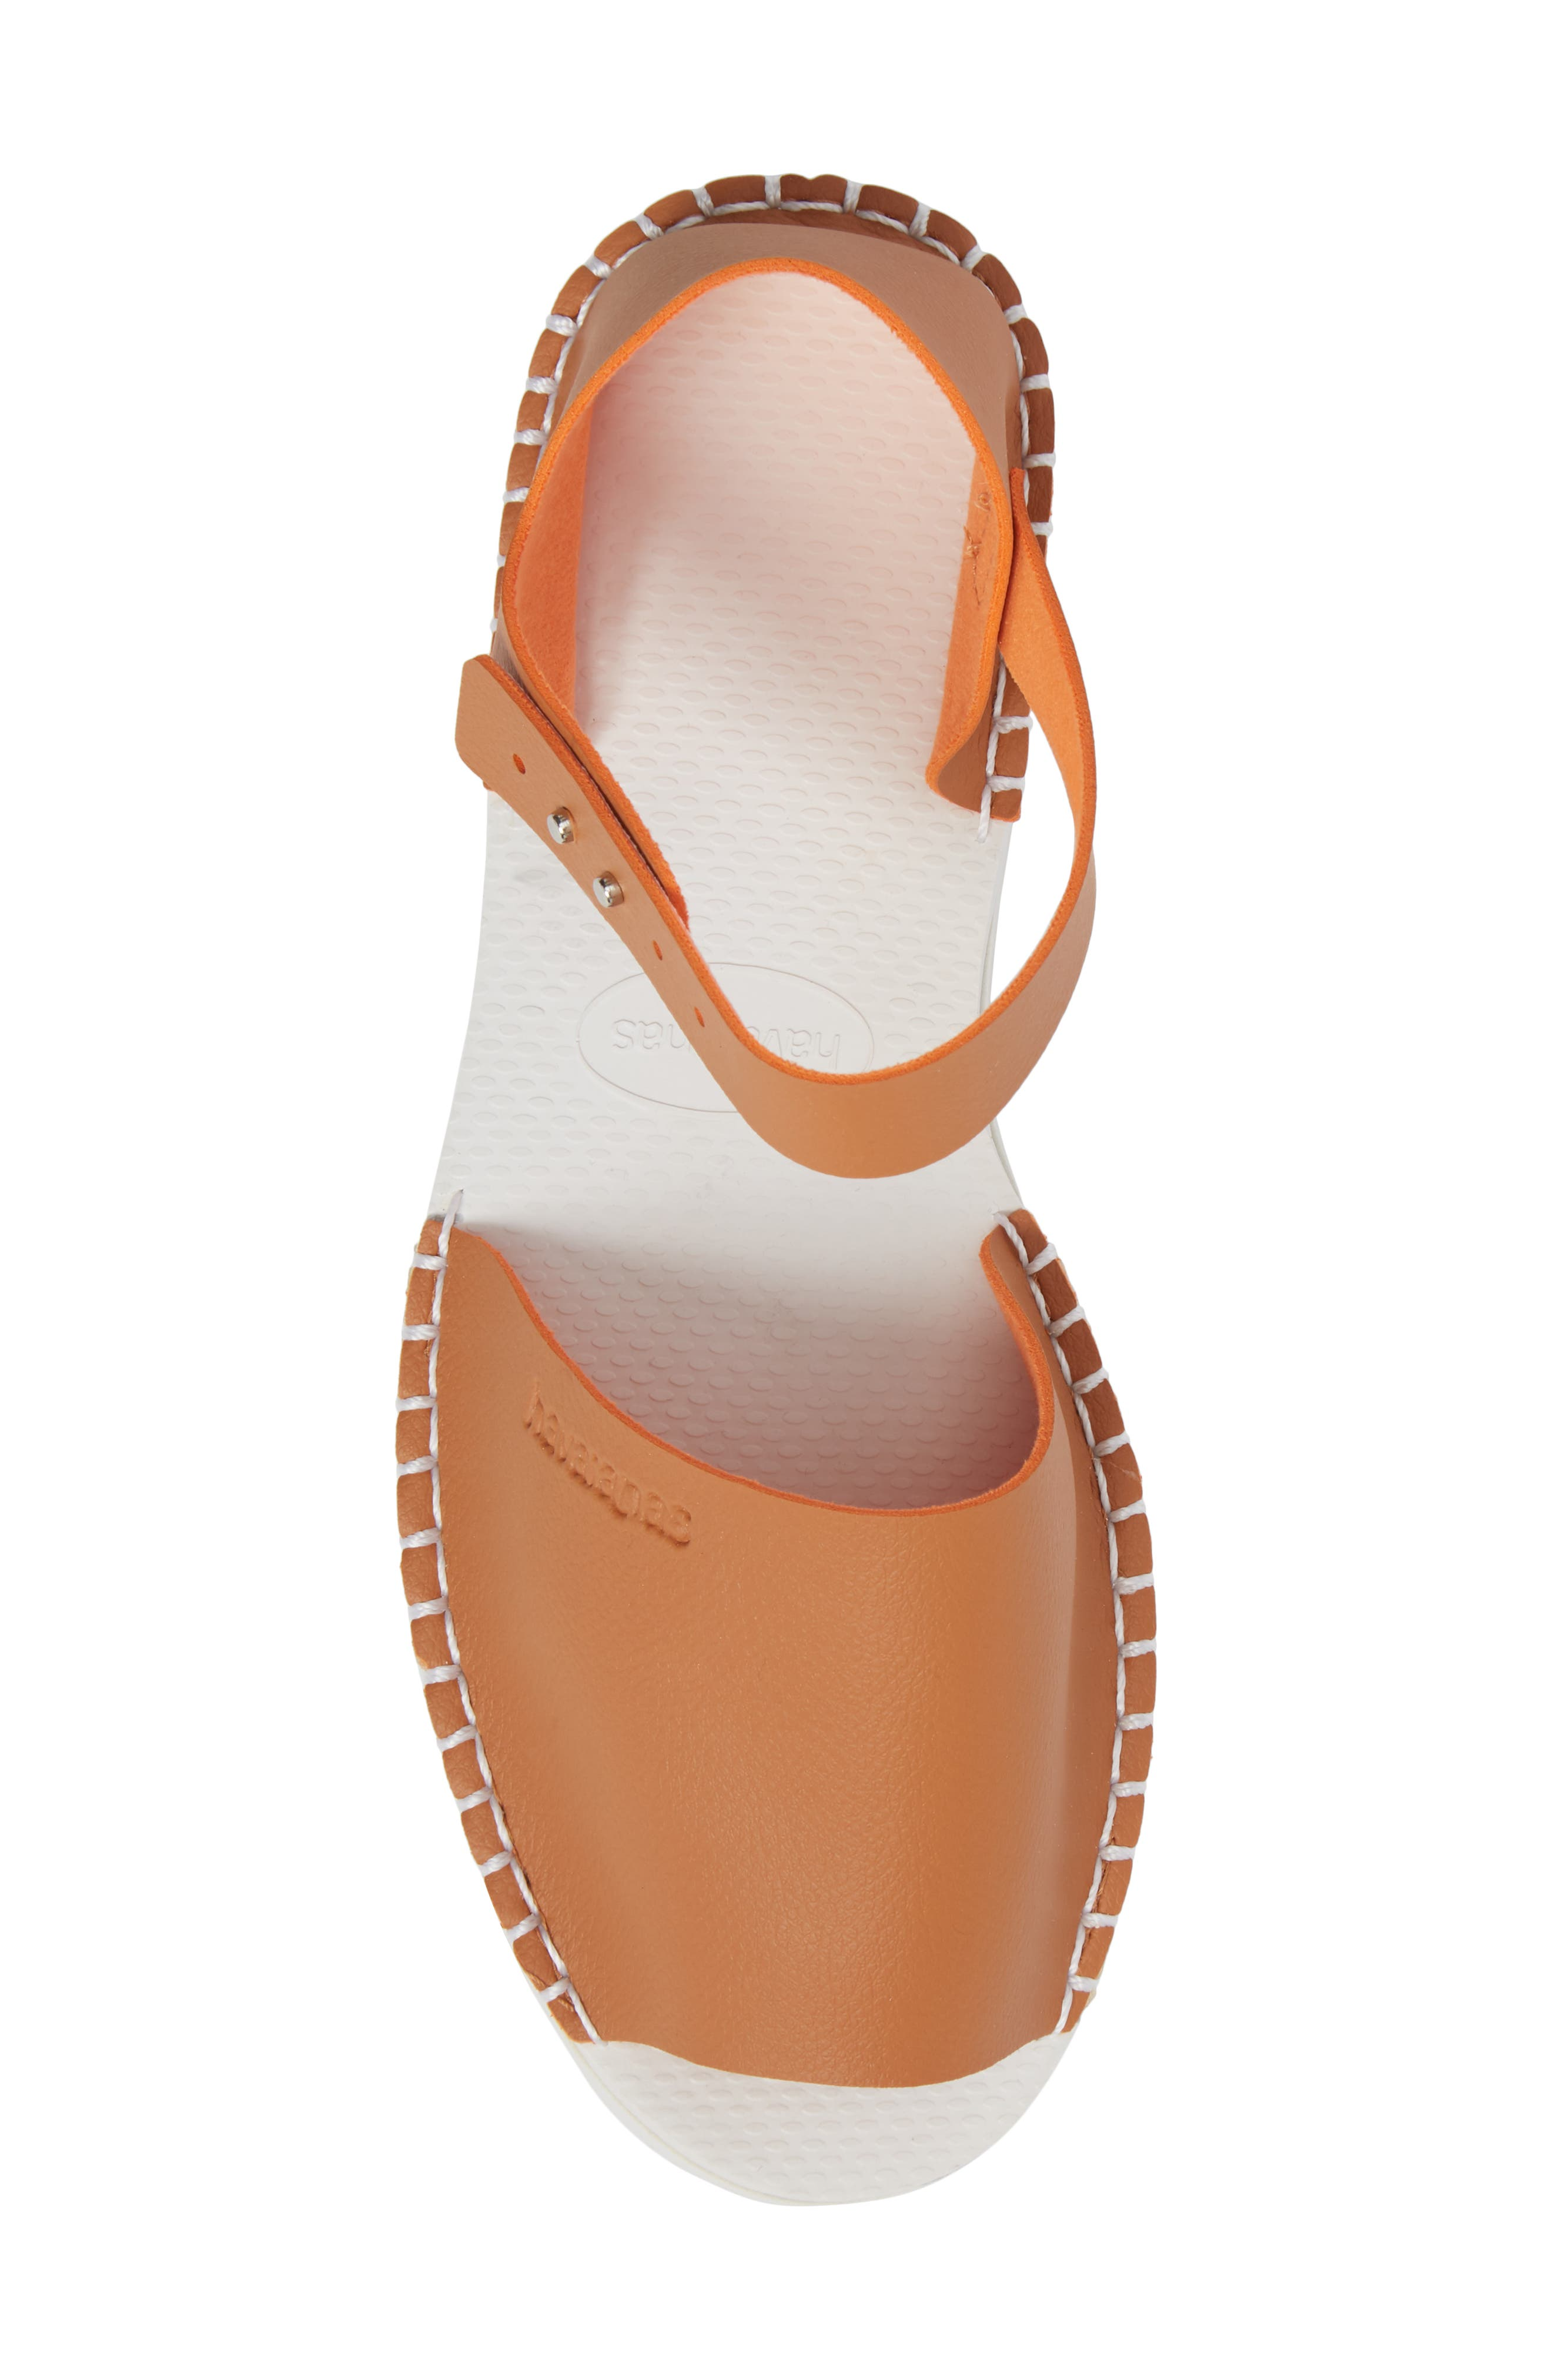 Flatform Fashion Sandal,                             Alternate thumbnail 5, color,                             CAMEL